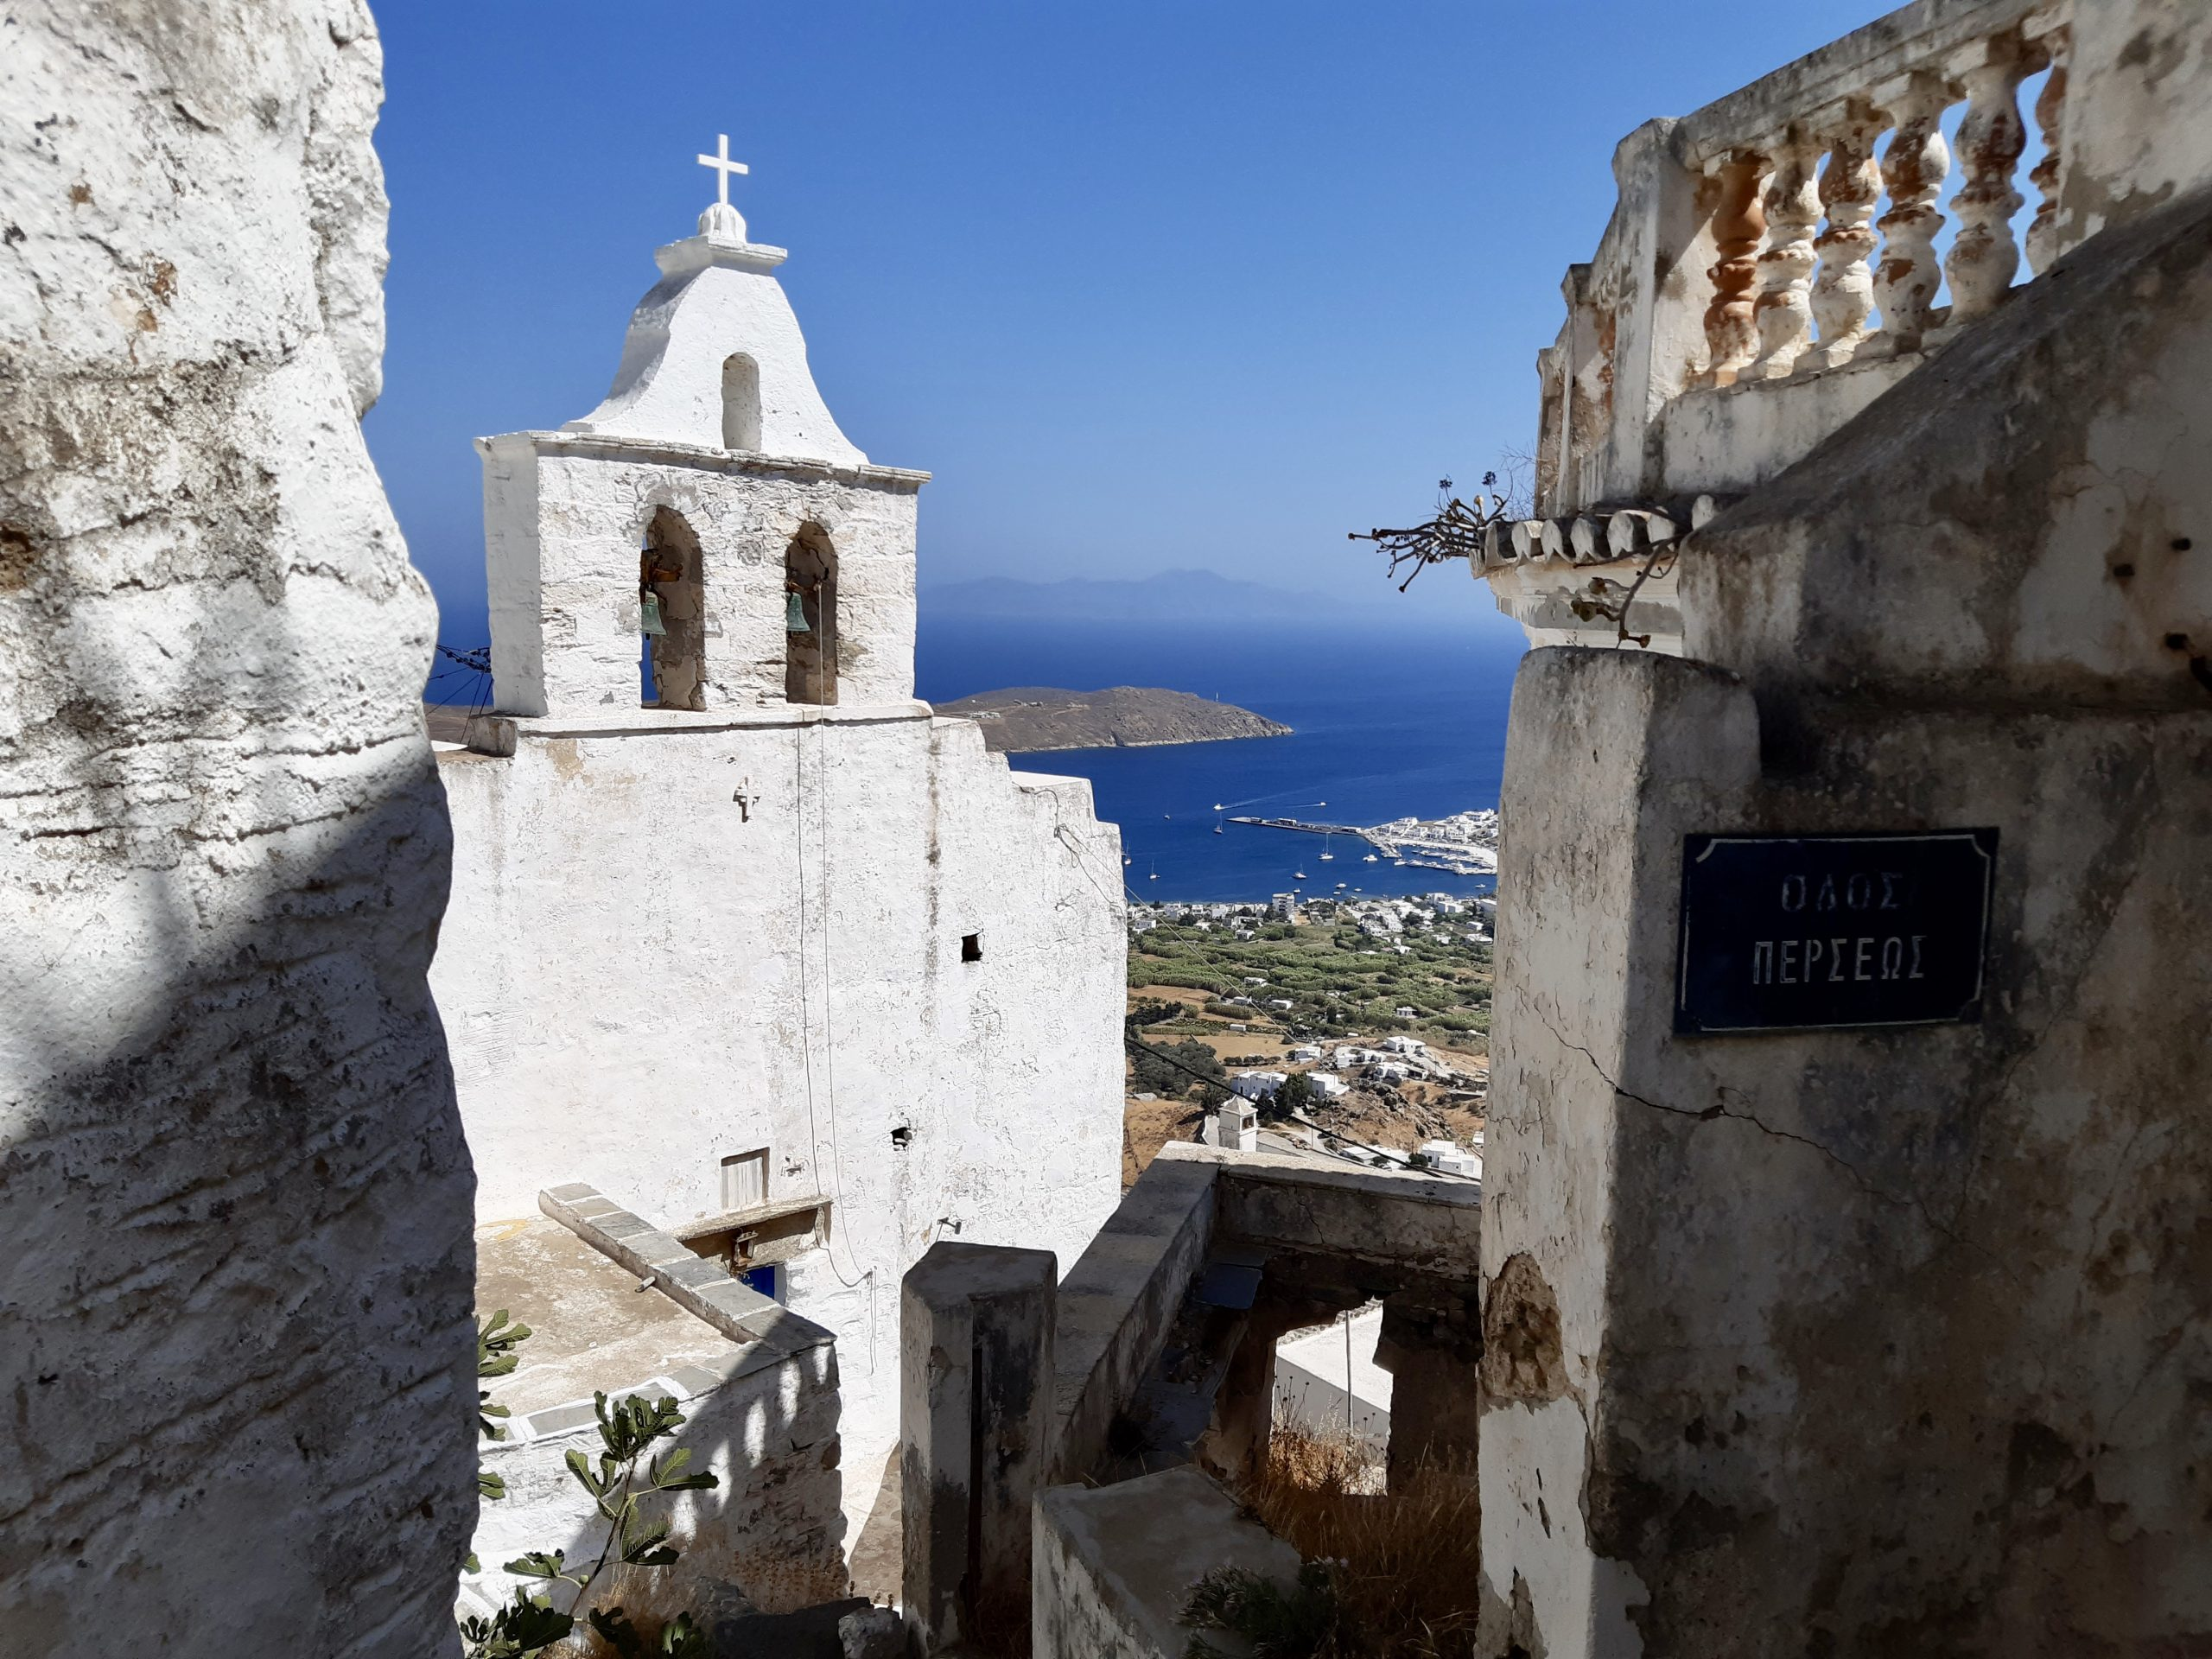 Serifos-GR-13_8_19-©-Roman-Goly-1-scaled.jpeg